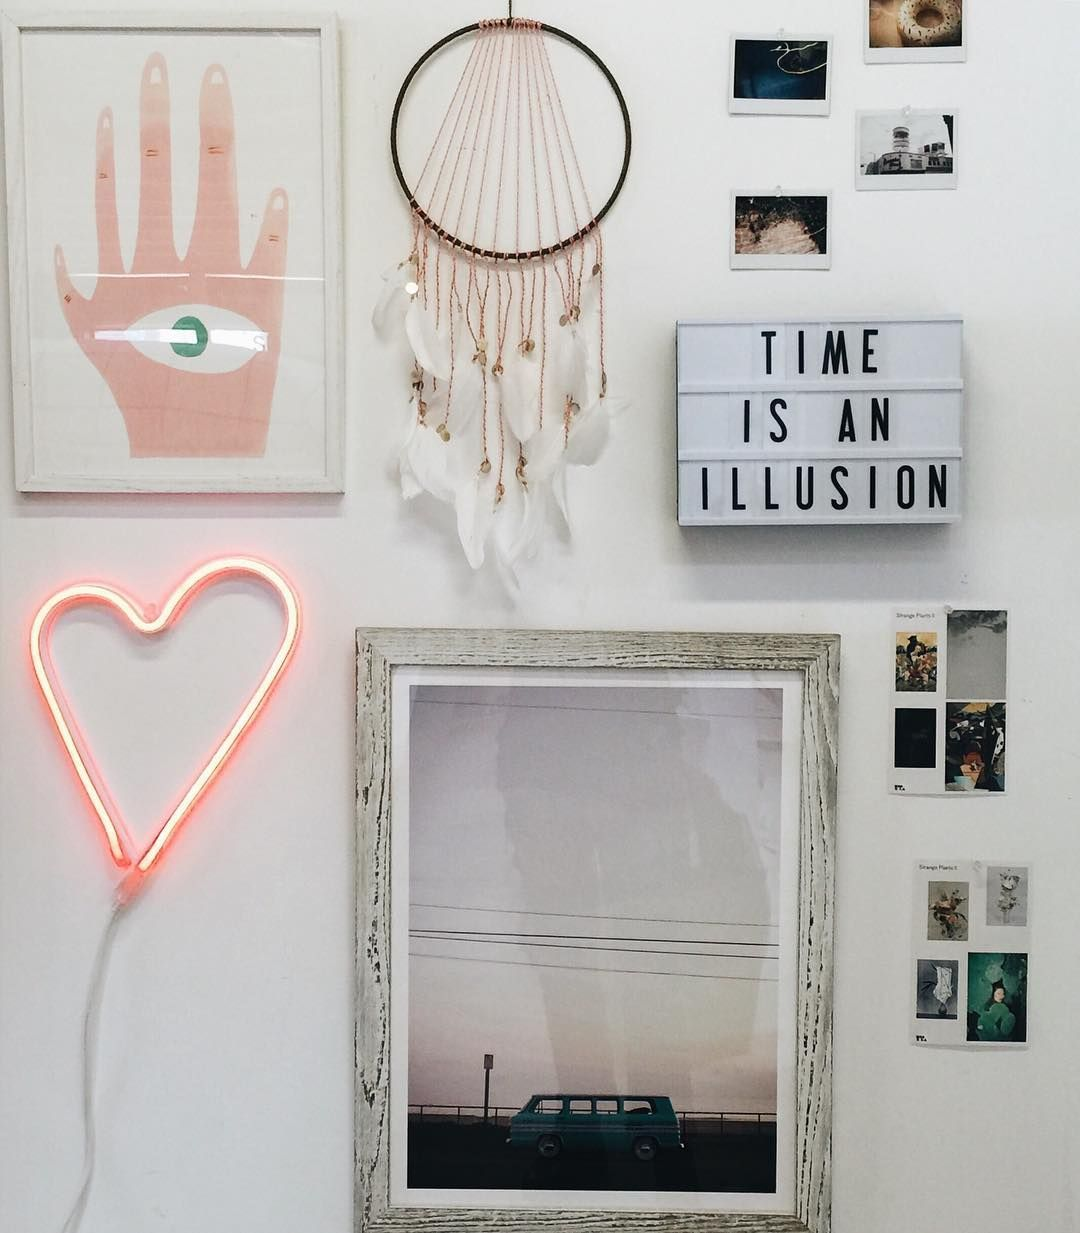 Urban outfitters malibu uomalibu instagram photos and for Room decor urban outfitters